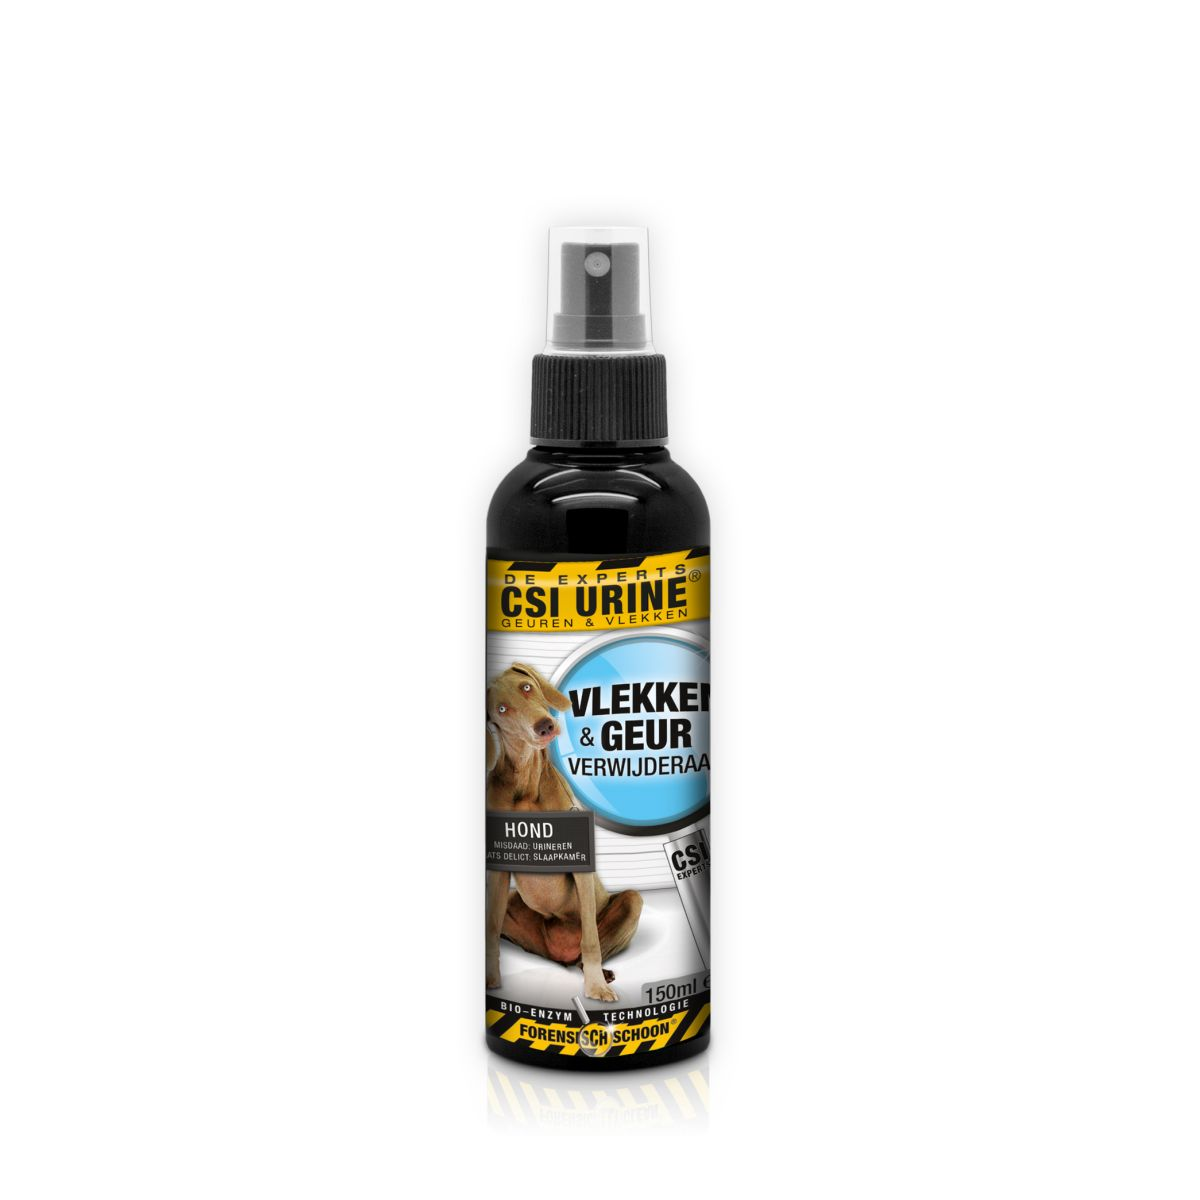 CSI URINE HOND/PUP SPRAY 150ML N 00001